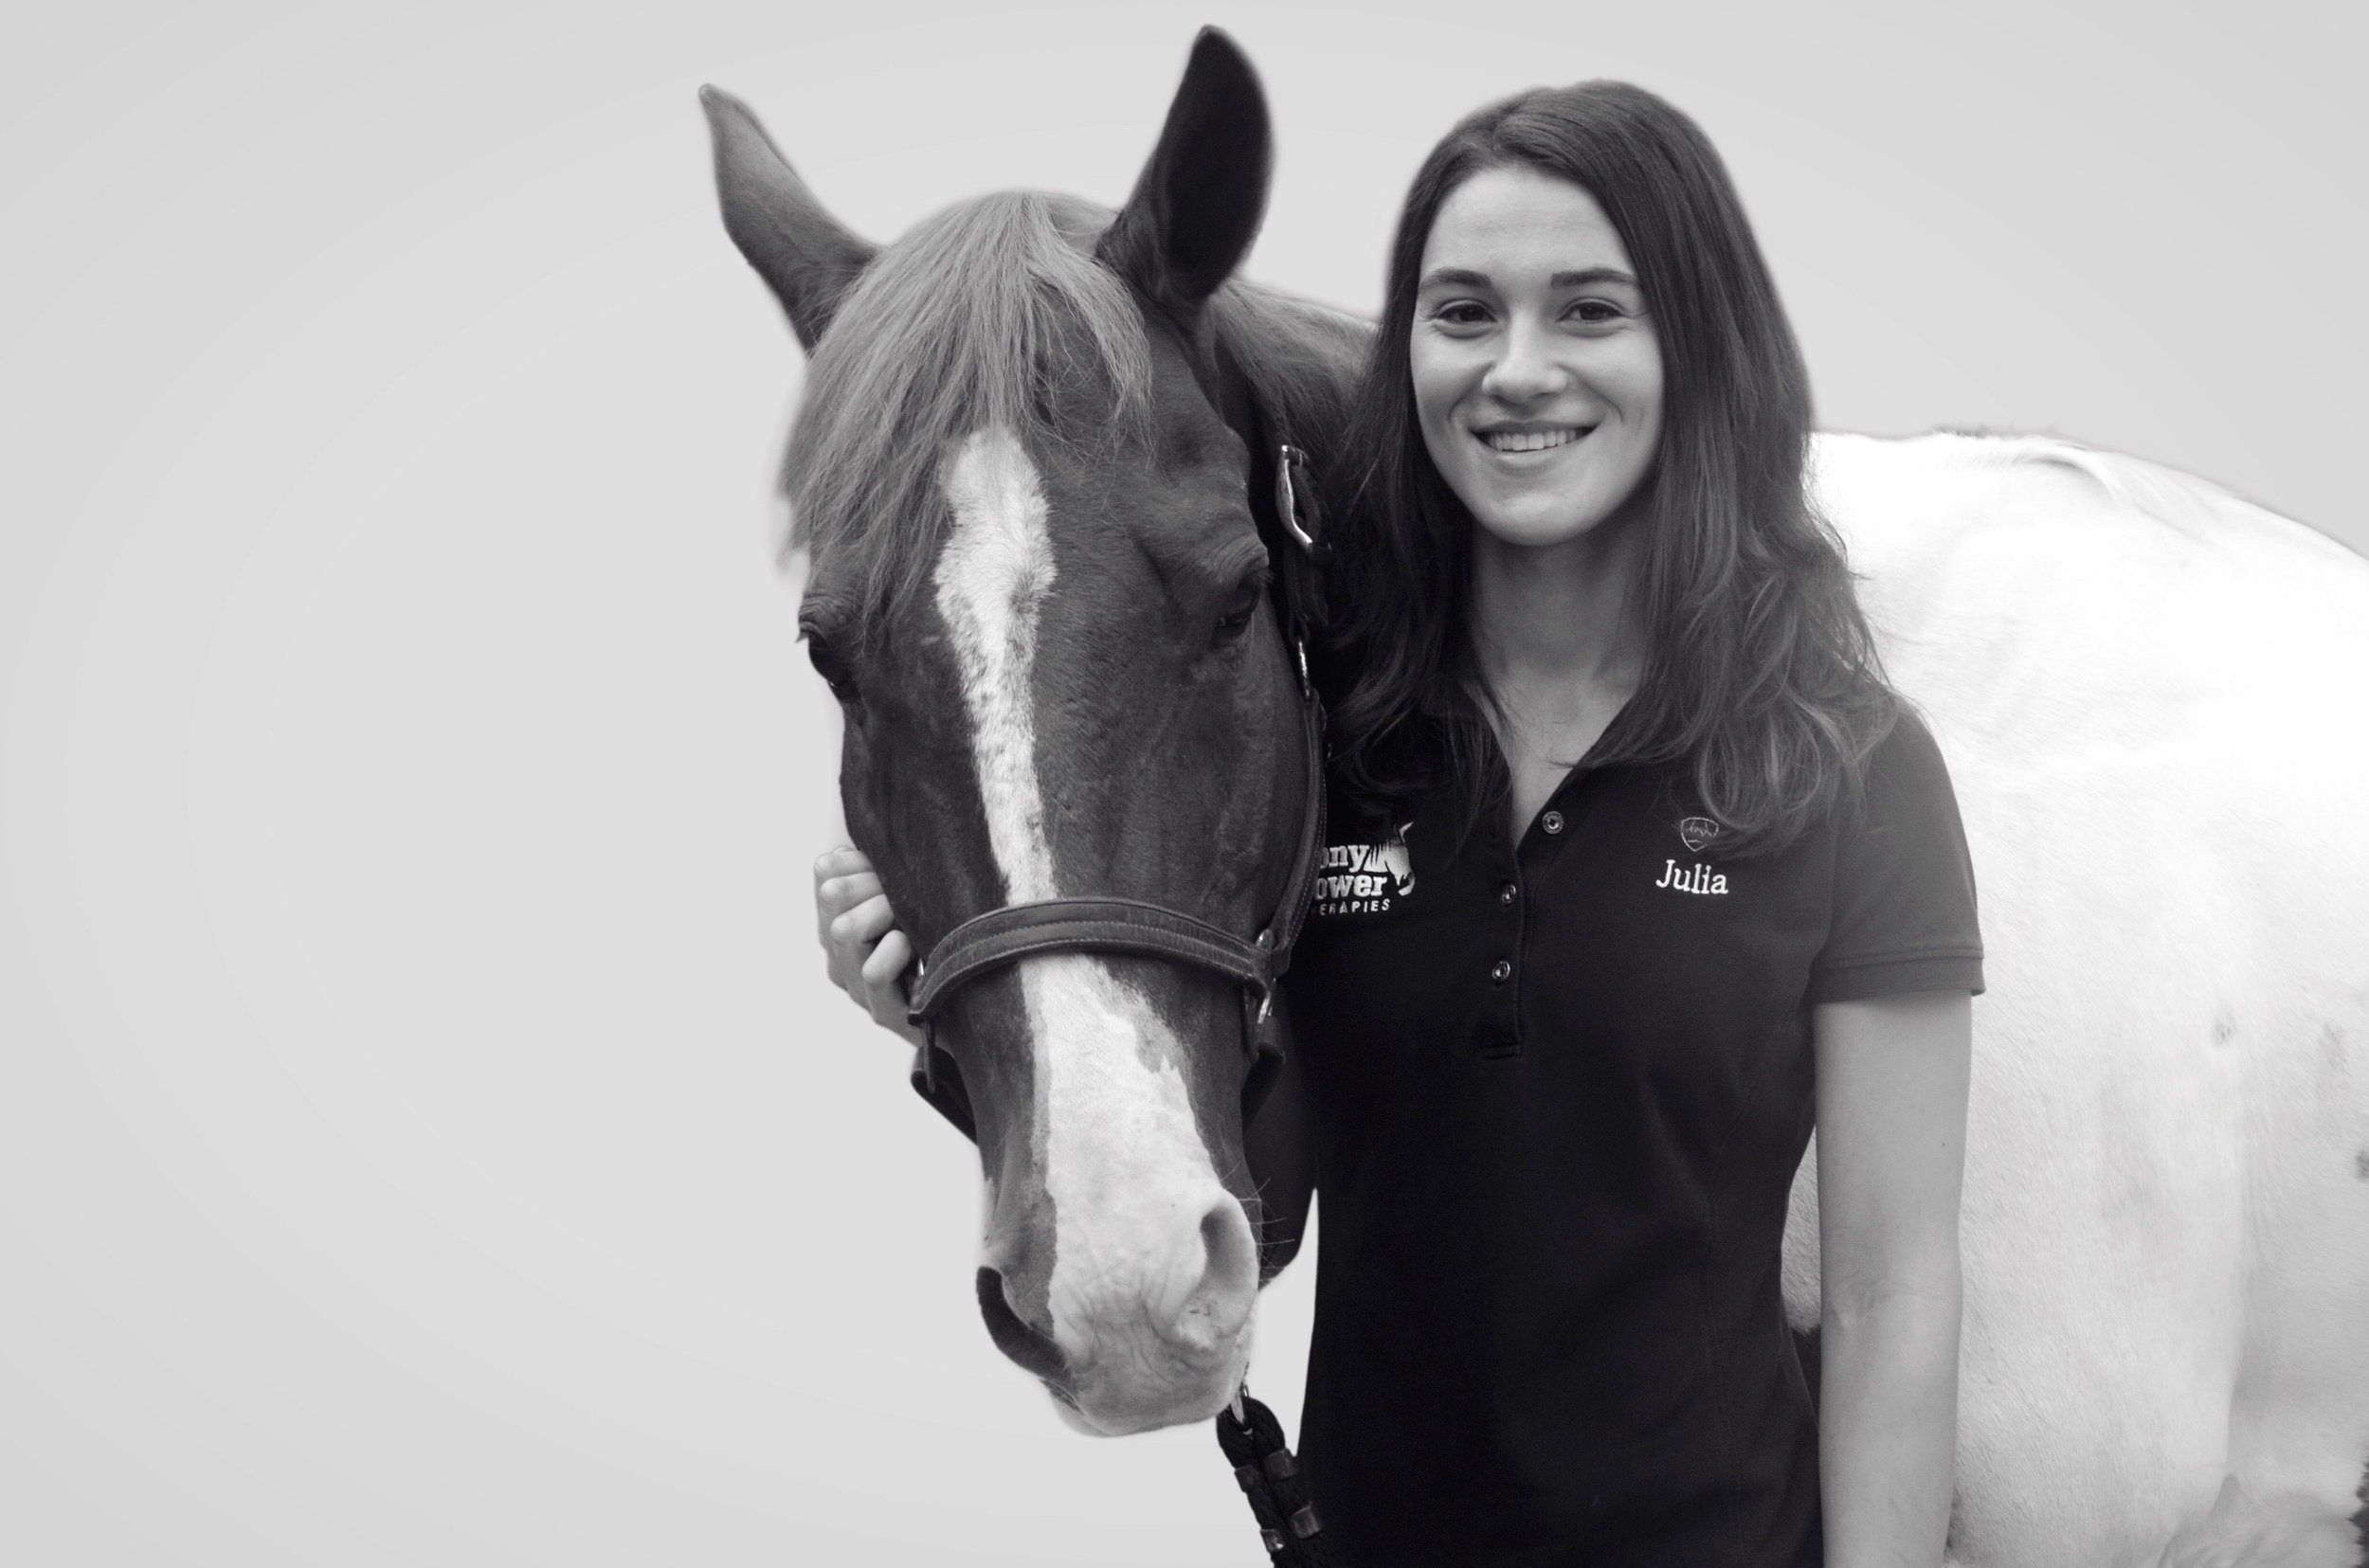 Julia came to Pony Power as a high school senior intern in 2009. Since then, Pony Power's herd has benefitted from her extensive riding and showing experience which began at age 8. After graduating Drew University in 2013, Julia joined our staff as full-time equine manager and instructor. She became a PATH International-certified instructor in 2014.